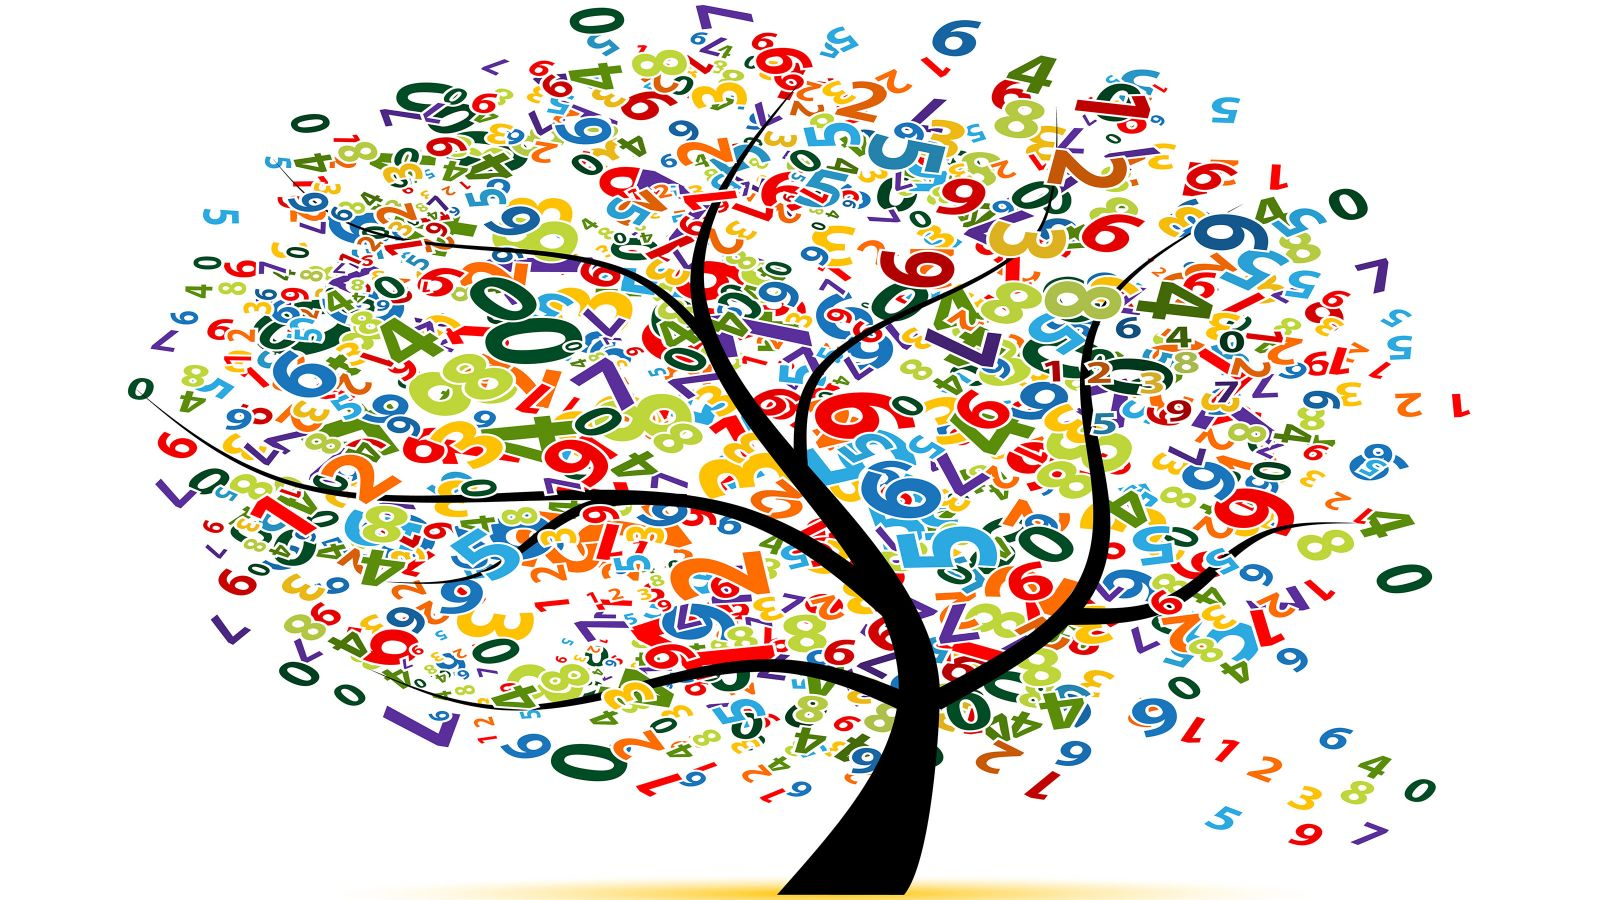 A cartoon tree with leaves made up of numbers